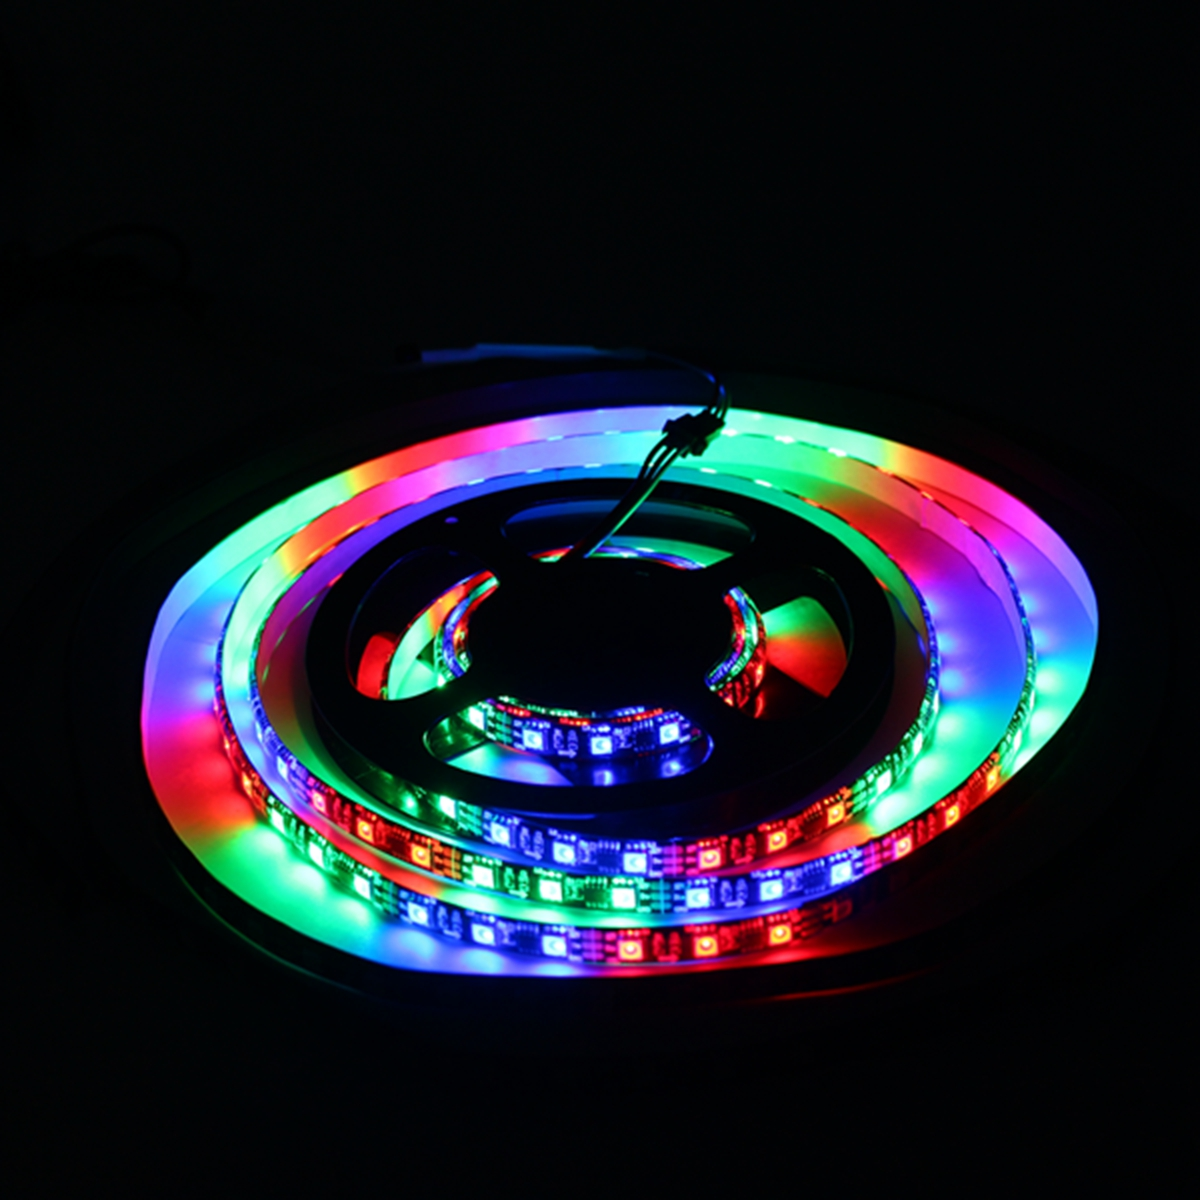 LUSTREON 1M 2M 3M 4M 5M Non-waterproof IC UCS1903 Programmable Flexible 60LED/M Strip Light DC12V